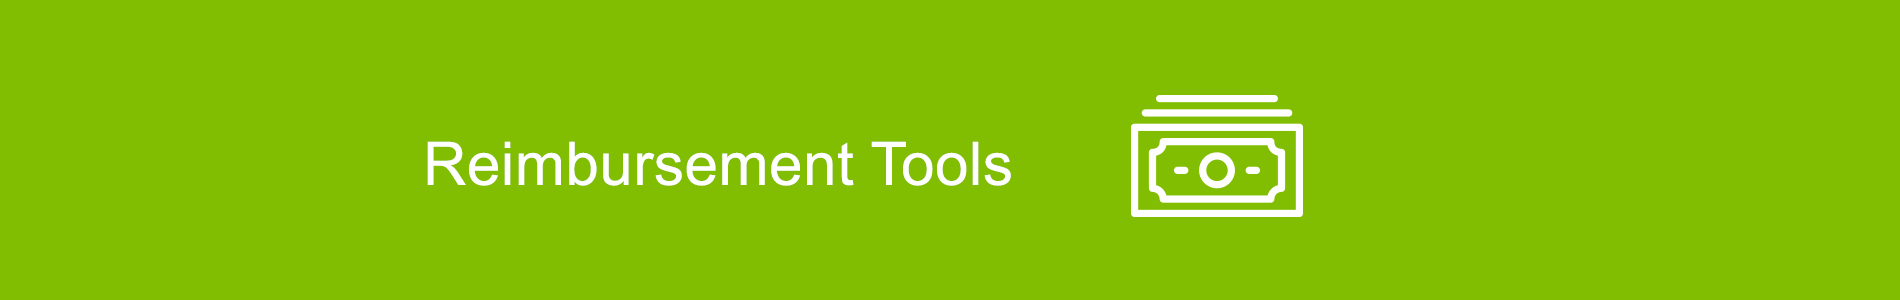 Reimbursement Tools